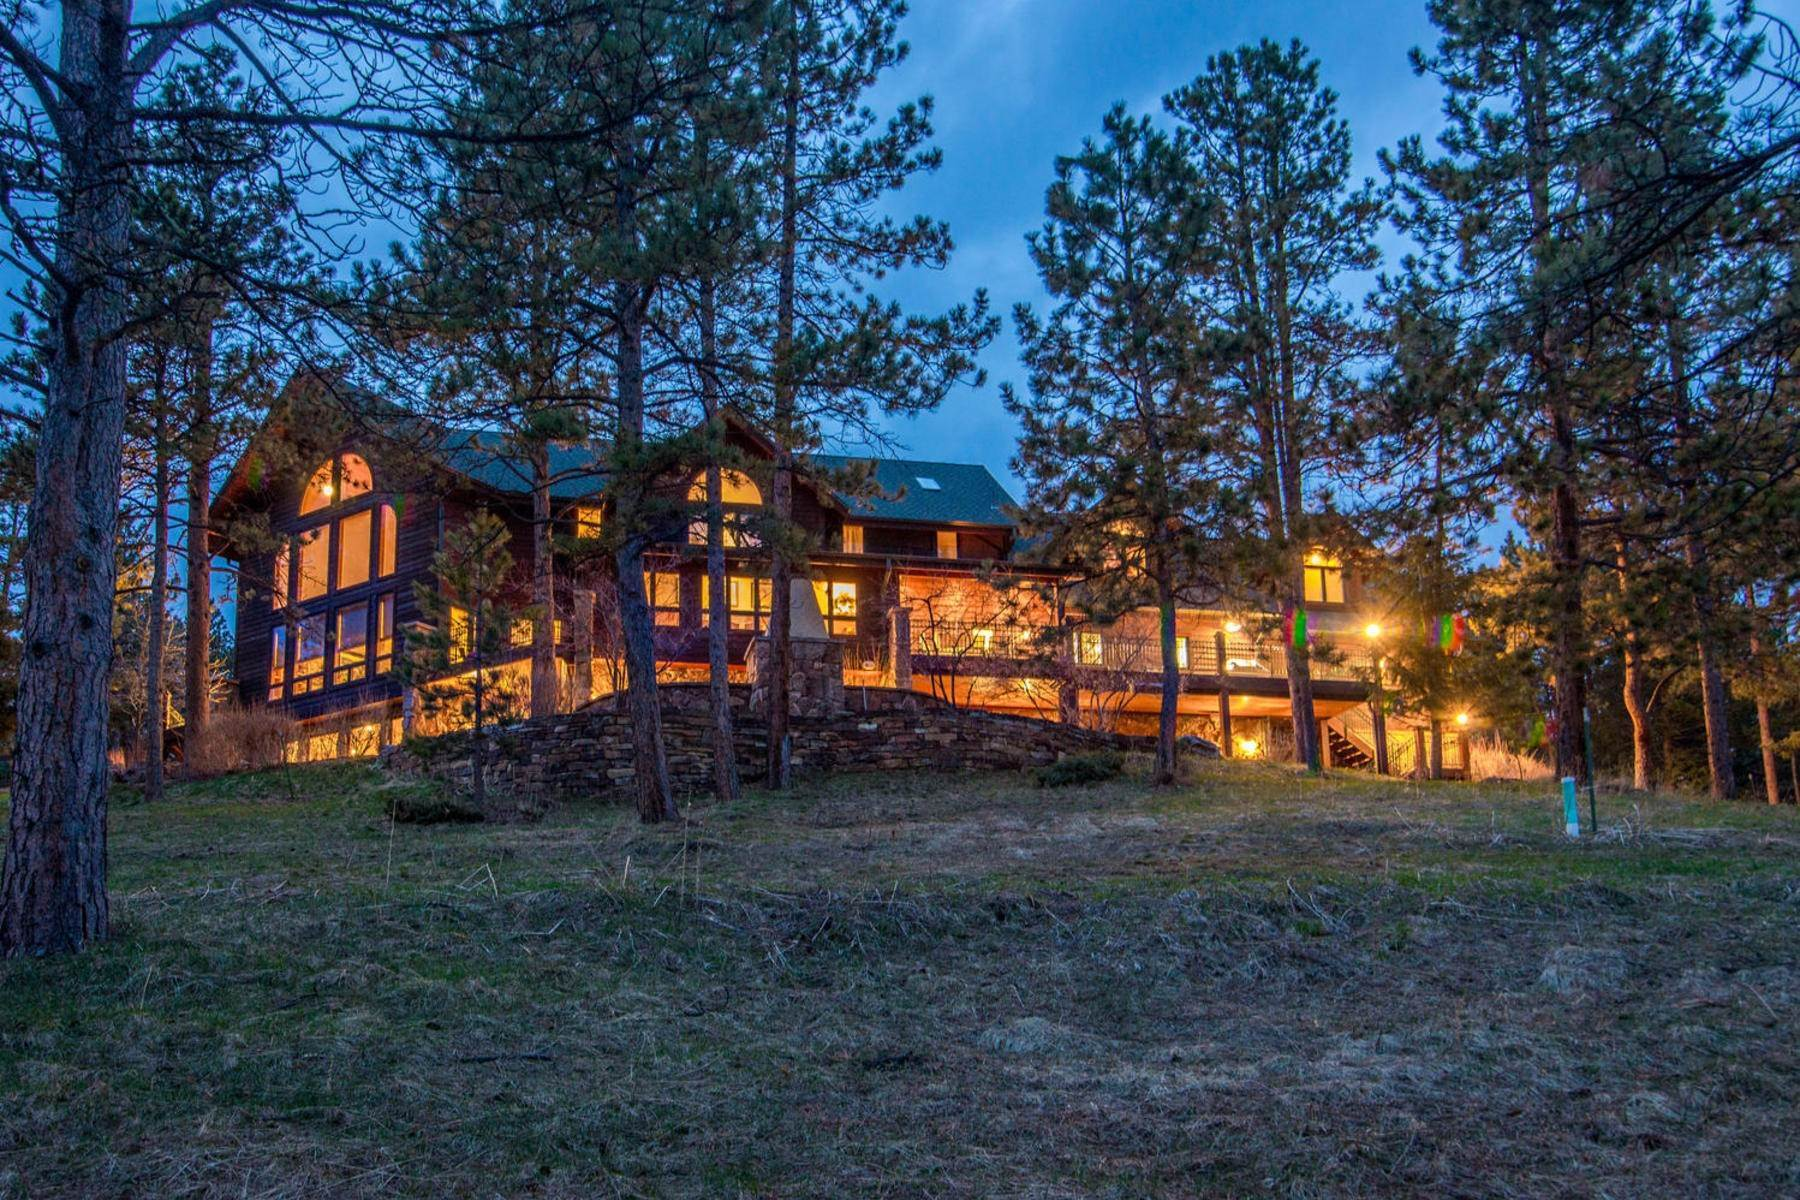 Single Family Homes for Active at Majestic Estate Nestled on 42.42 Acres 28775 Cragmont Drive Evergreen, Colorado 80439 United States